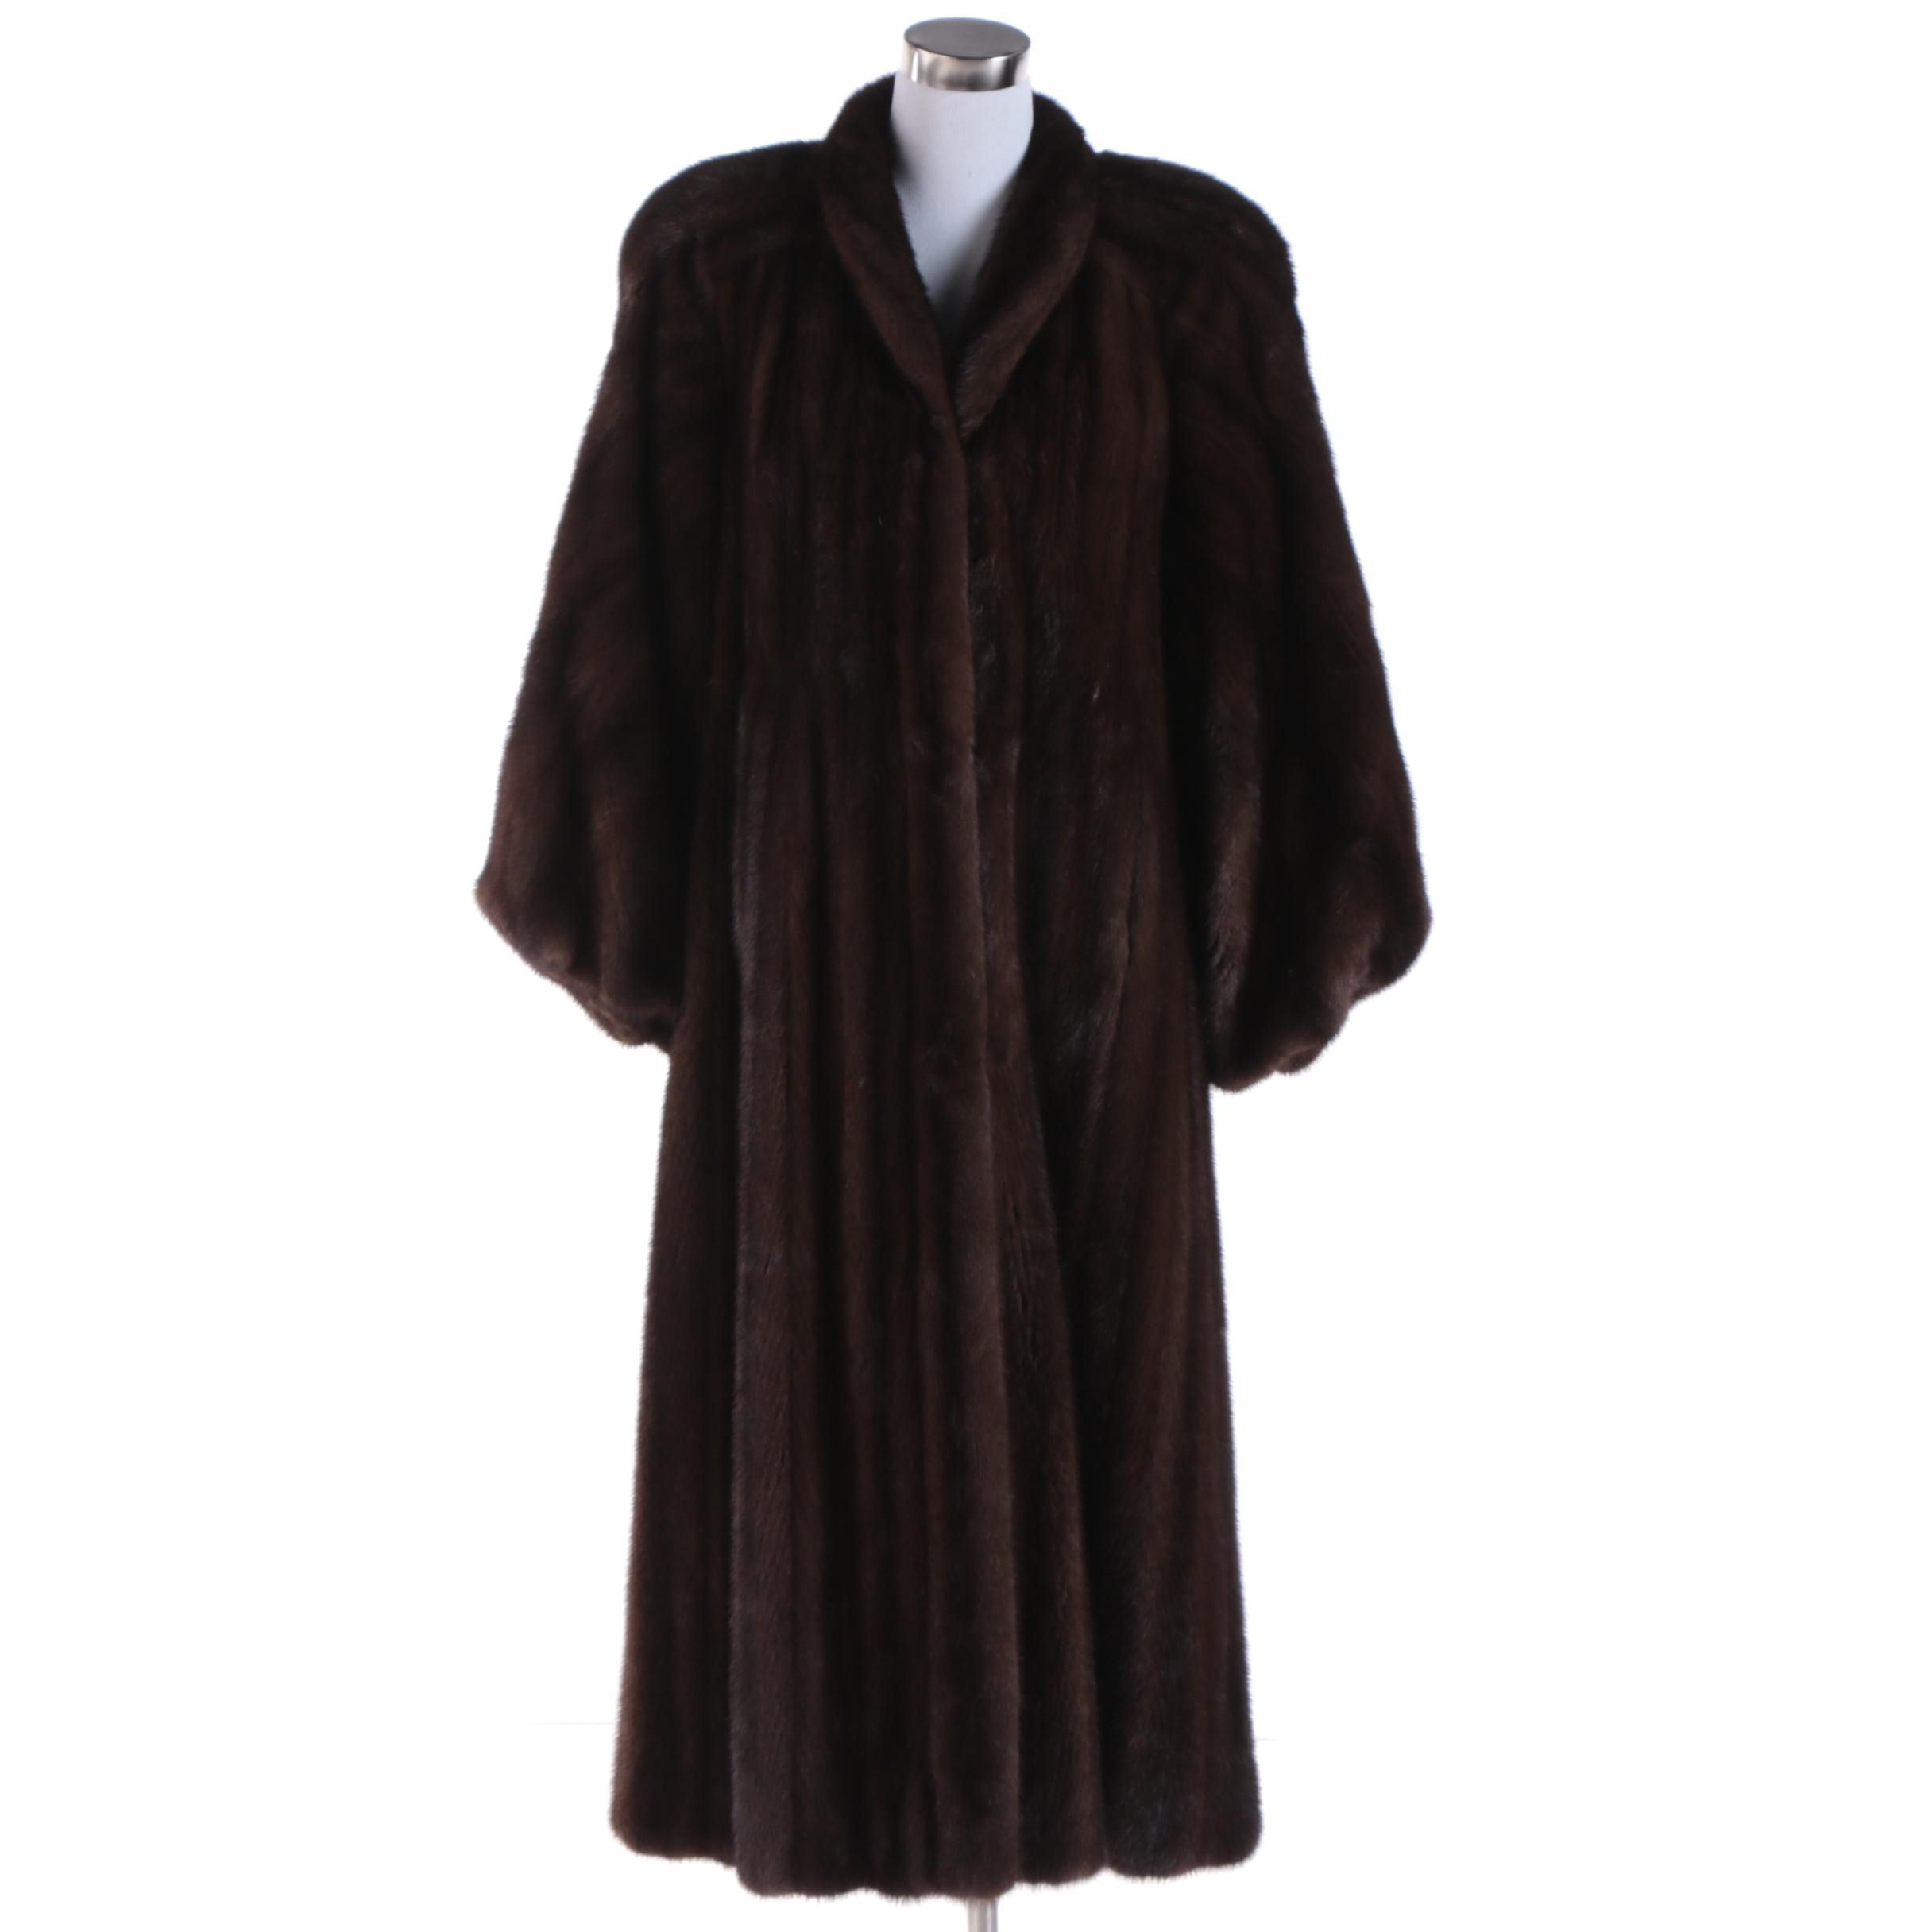 Women's Vintage Grosvenor Dark Brown Mink Fur Full-Length Coat